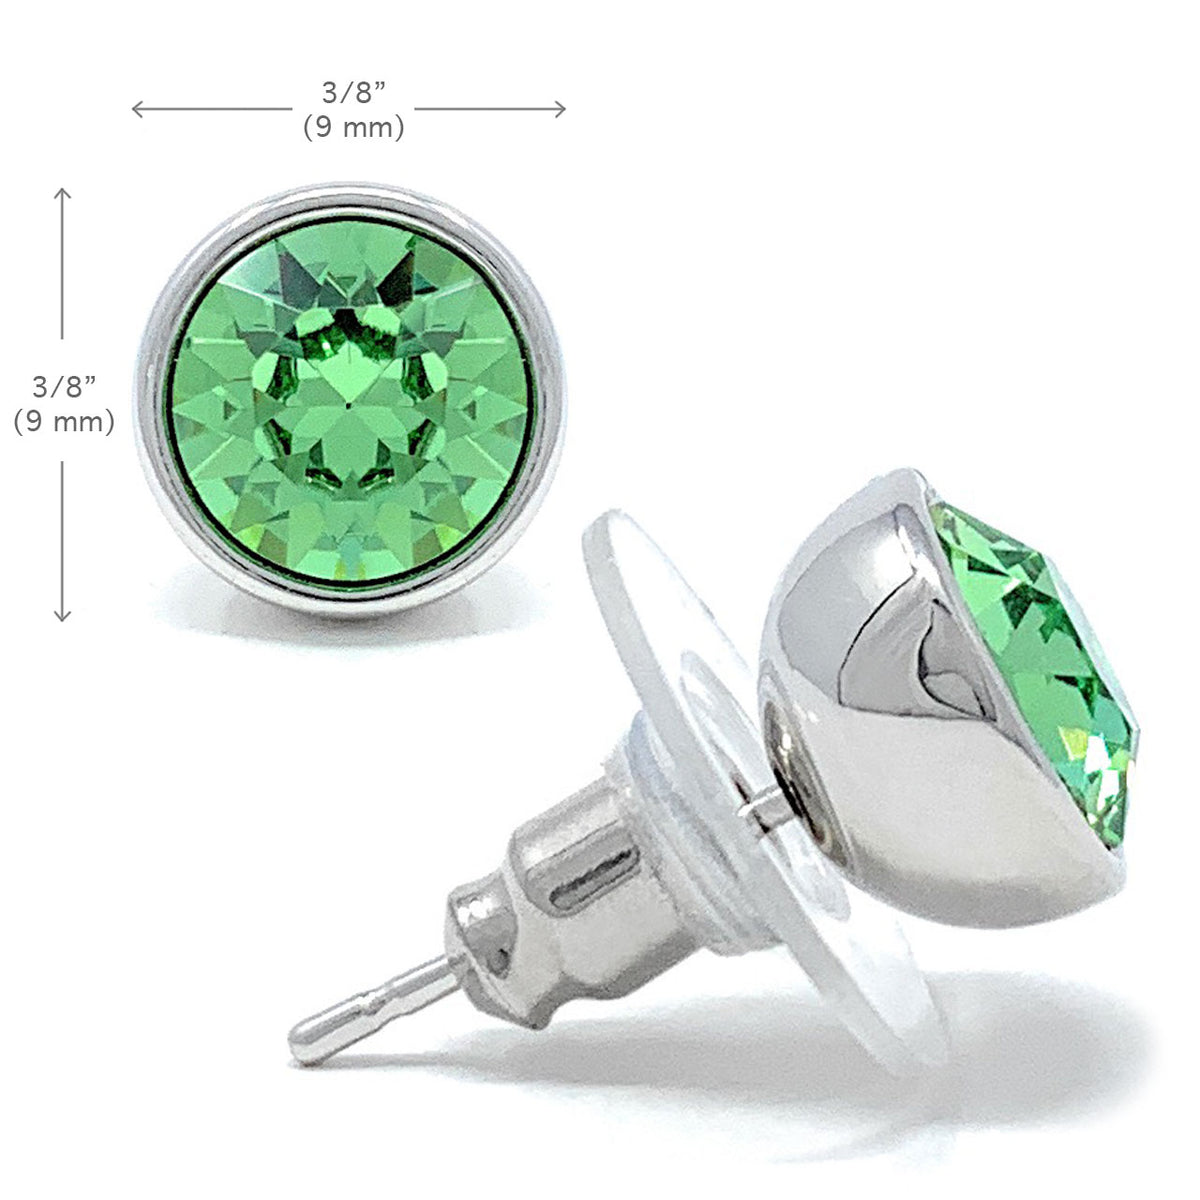 Harley Stud Earrings with Green Peridot Round Crystals from Swarovski Silver Toned Rhodium Plated - Ed Heart